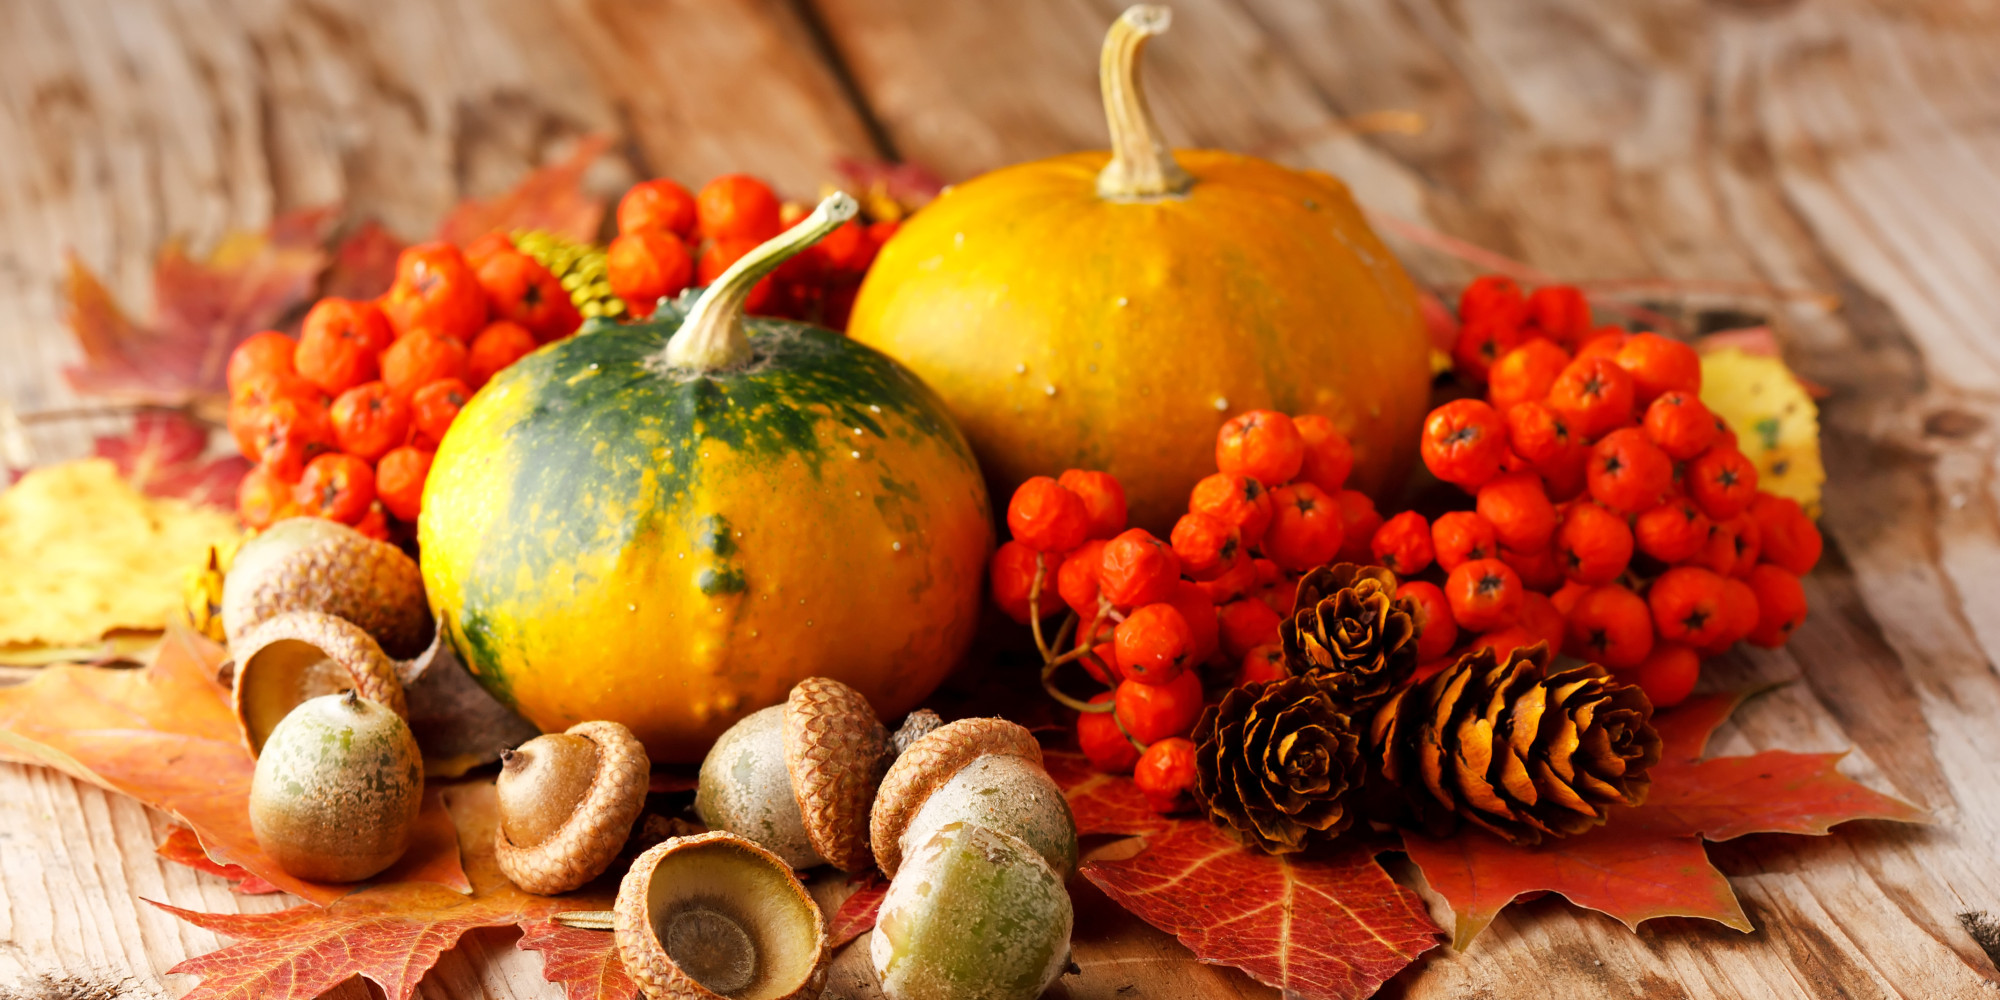 Fall Candles Wallpaper The Best Fall Food A Huffpost Deathmatch Vote Huffpost